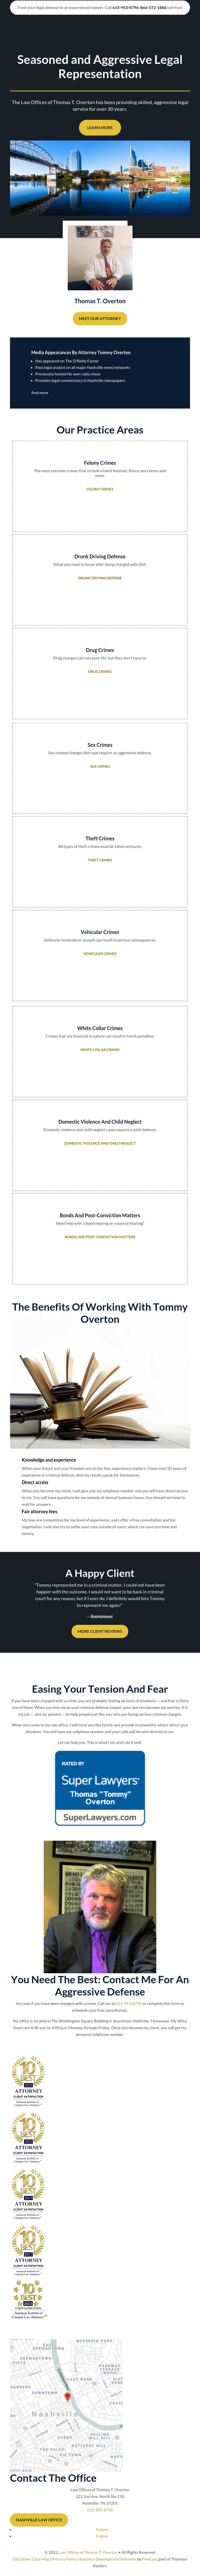 Law Offices of Thomas T. Overton - Nashville TN Lawyers